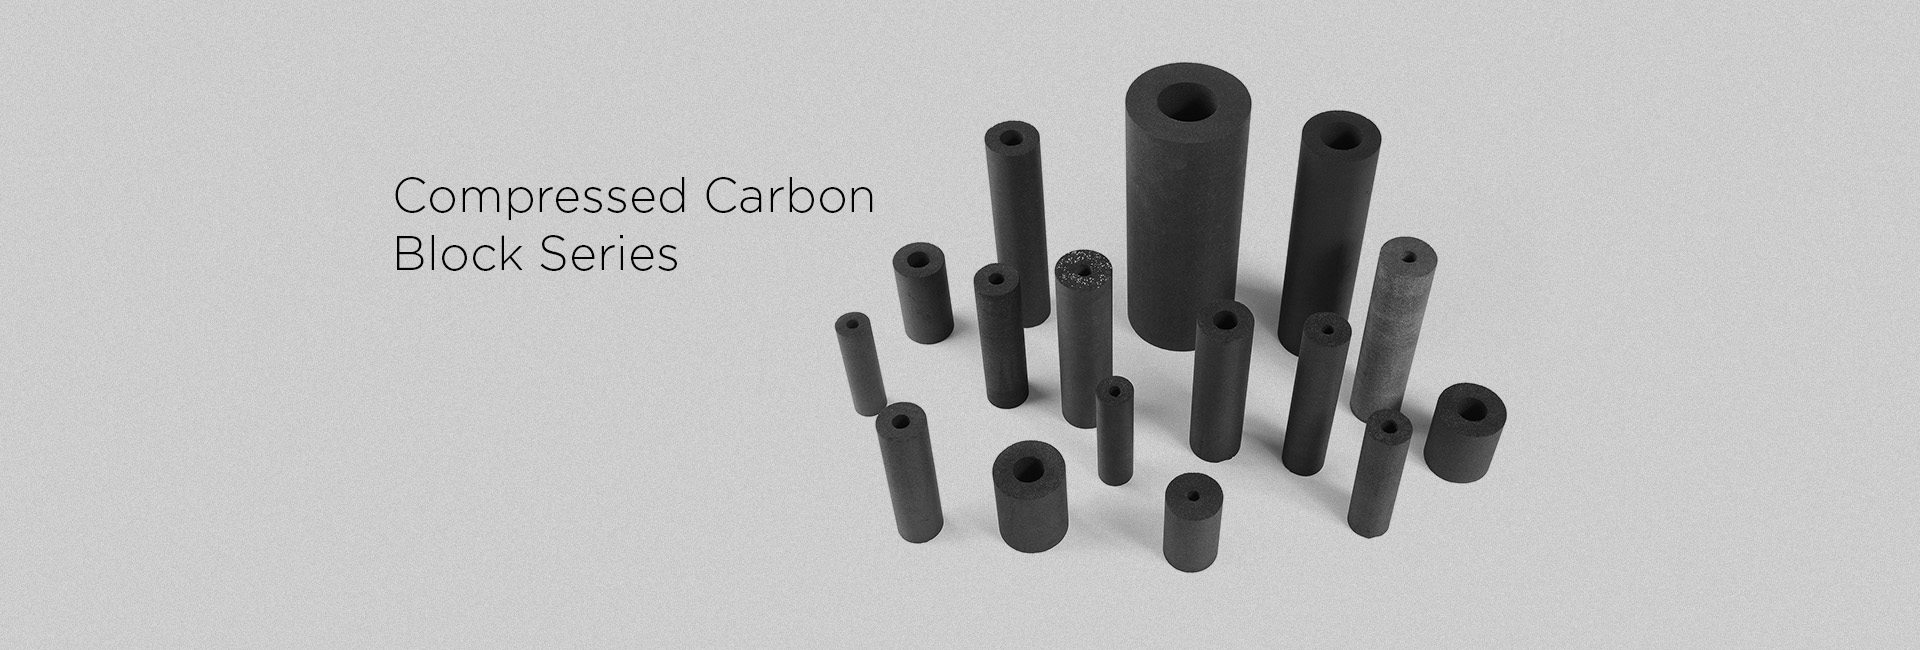 Compressed Carbon Block